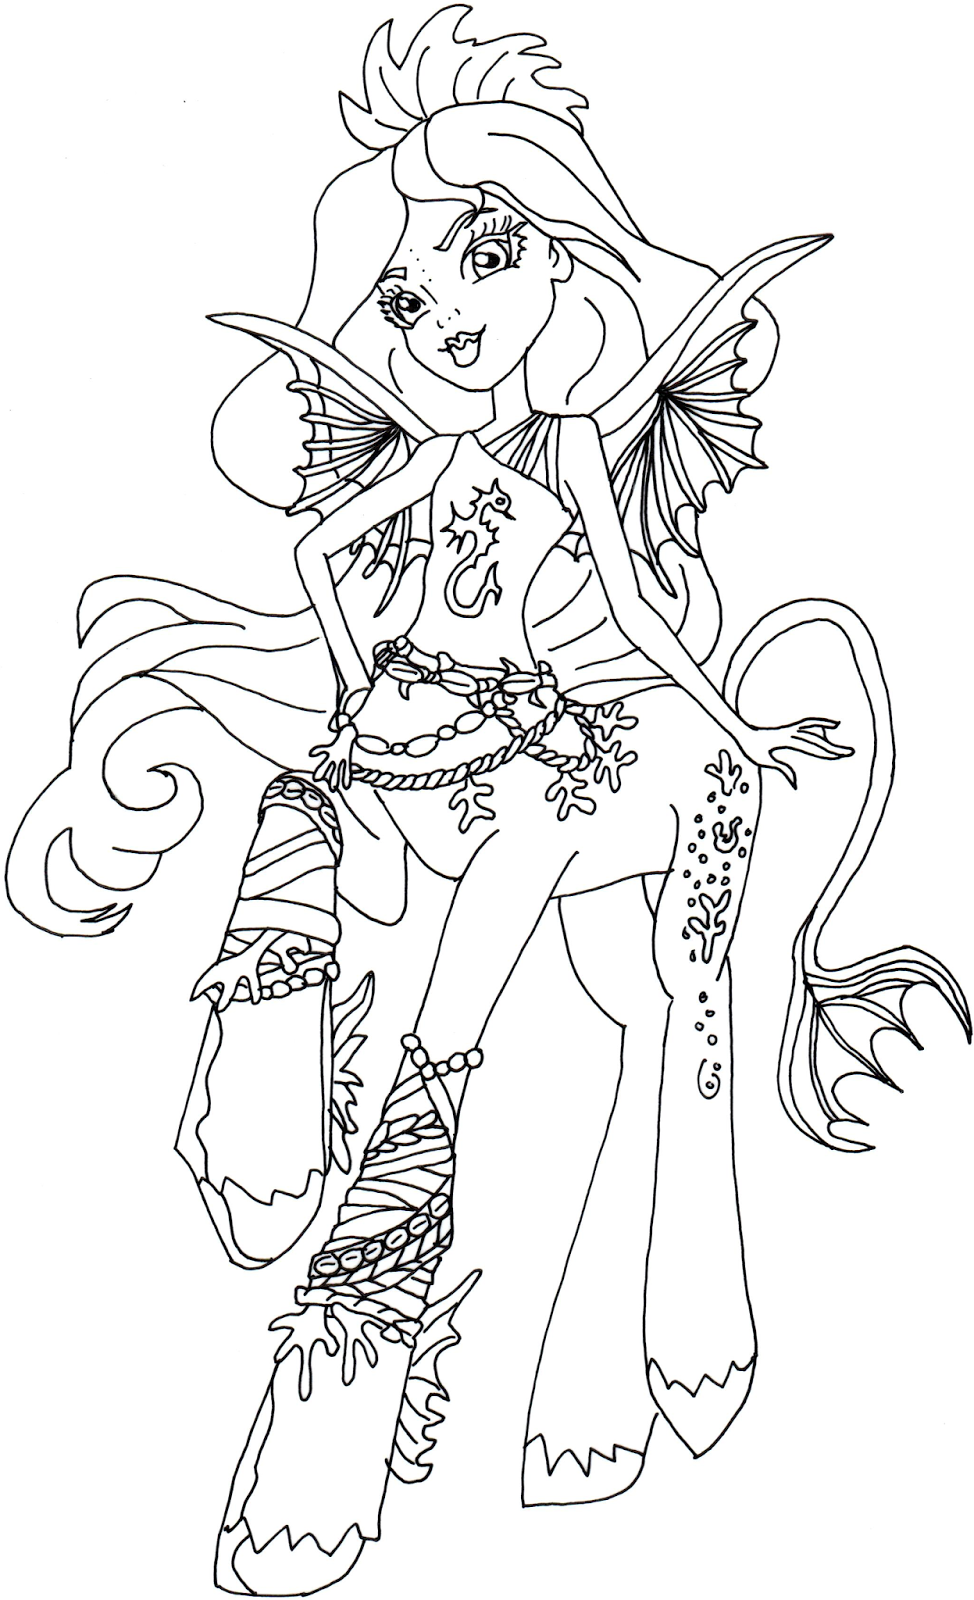 Free Printable Monster High Coloring Pages November 2015 High Coloring Pages Print